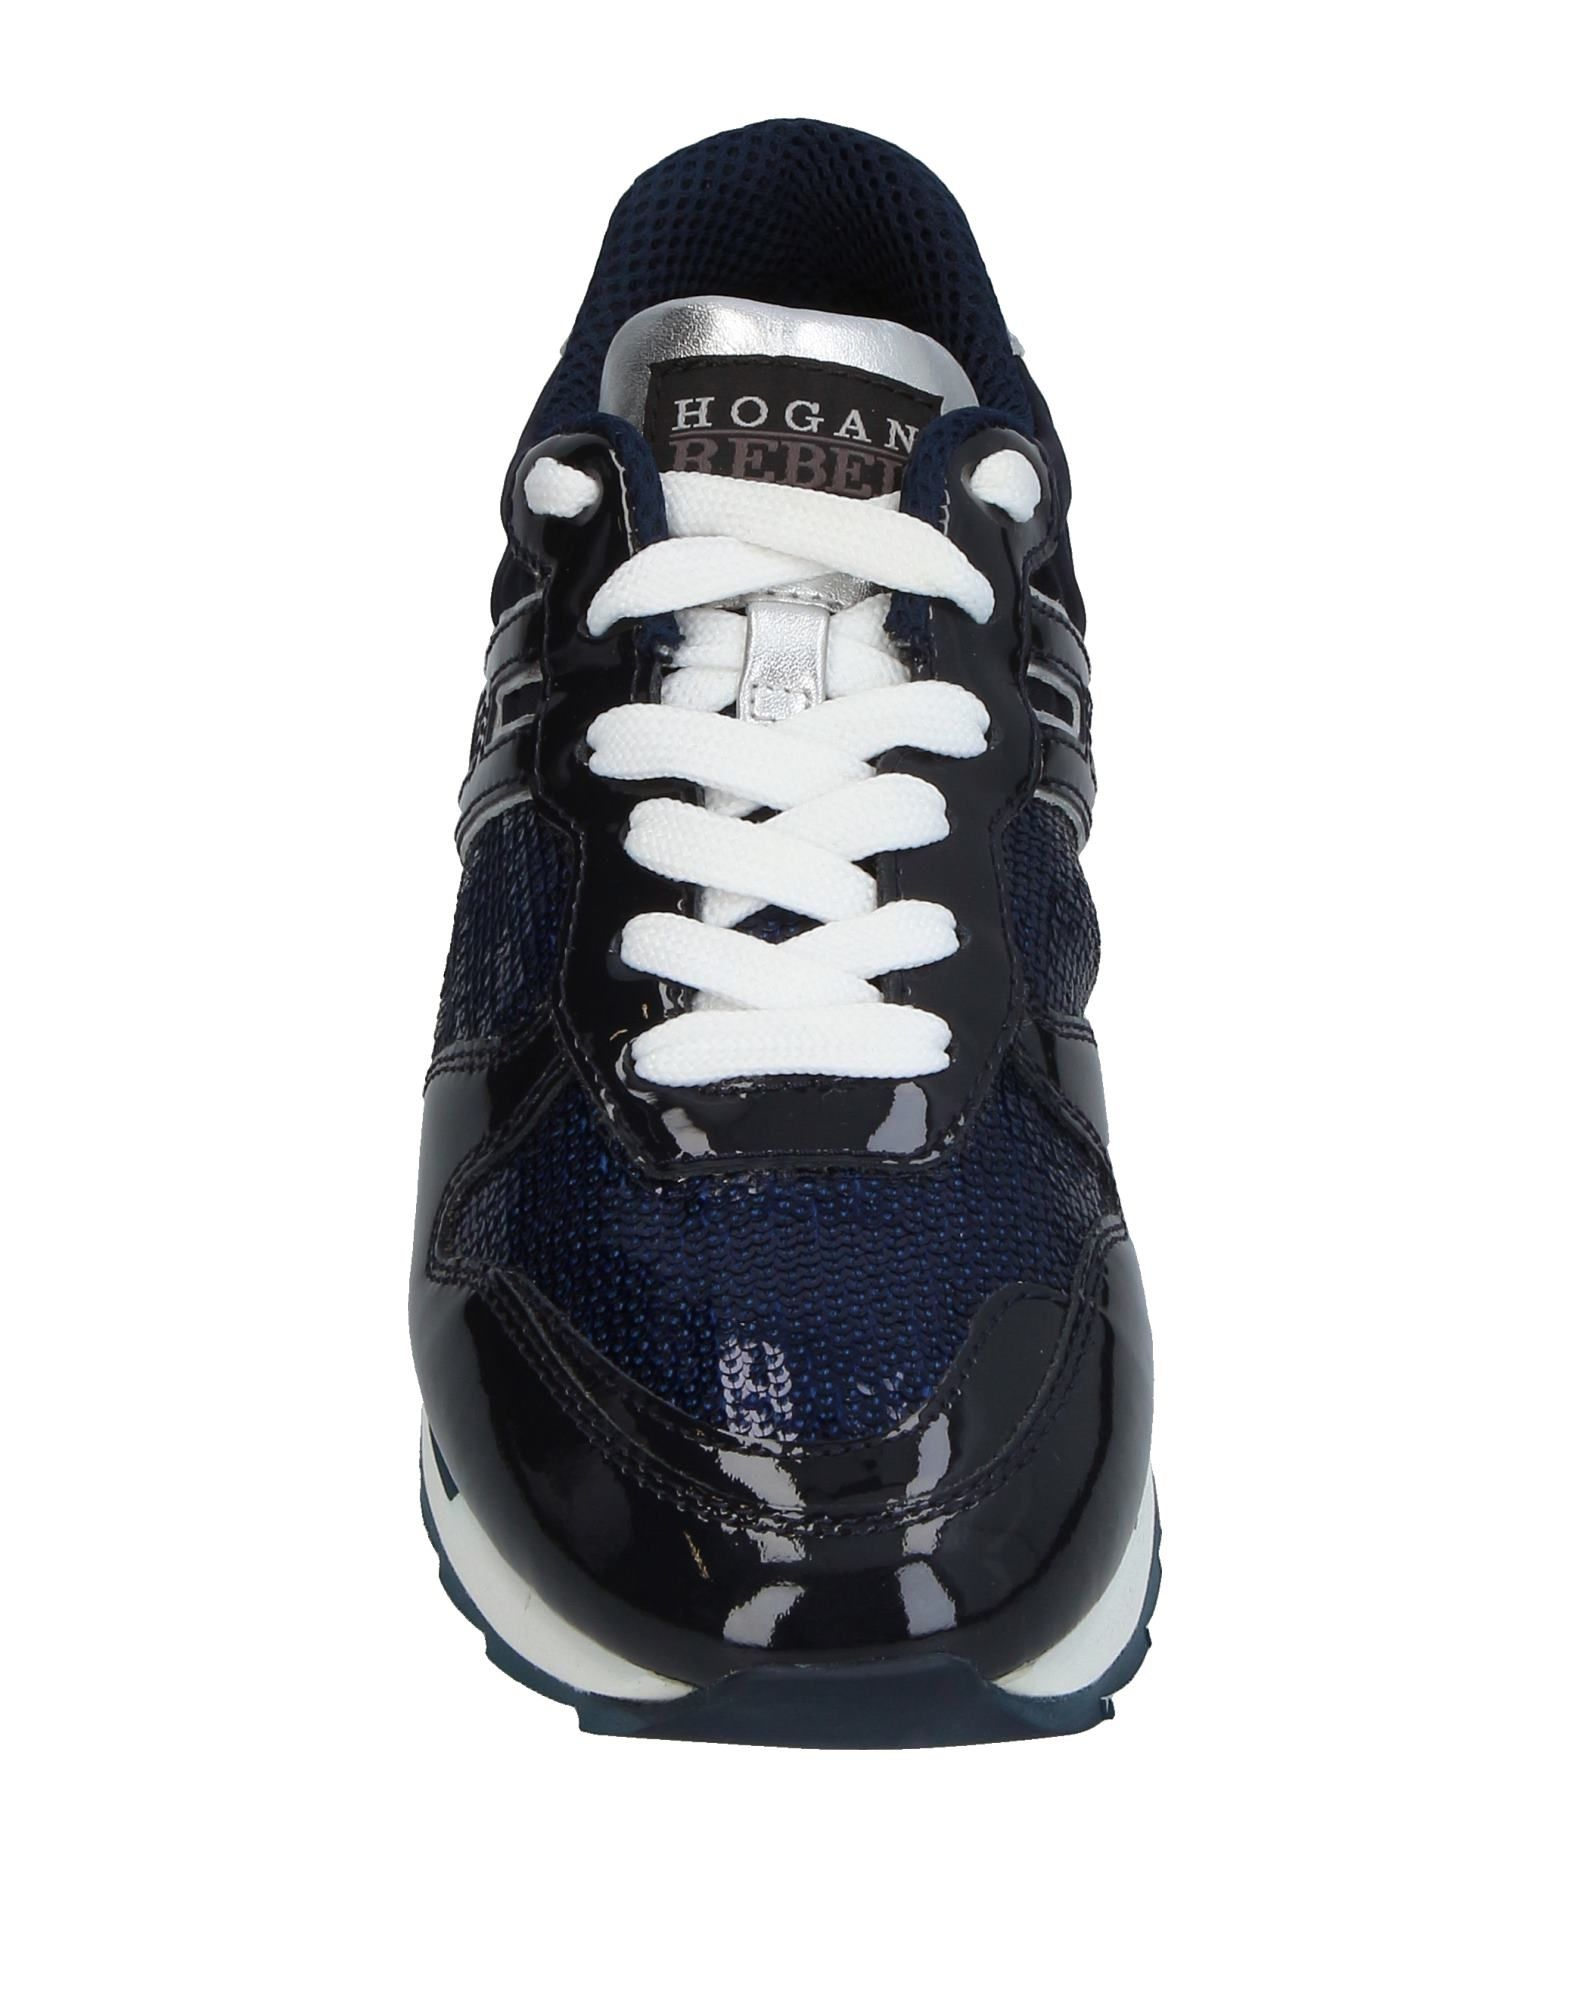 Stilvolle billige Schuhe Hogan  Rebel Sneakers Damen  Hogan 11397226NH 9c19f9